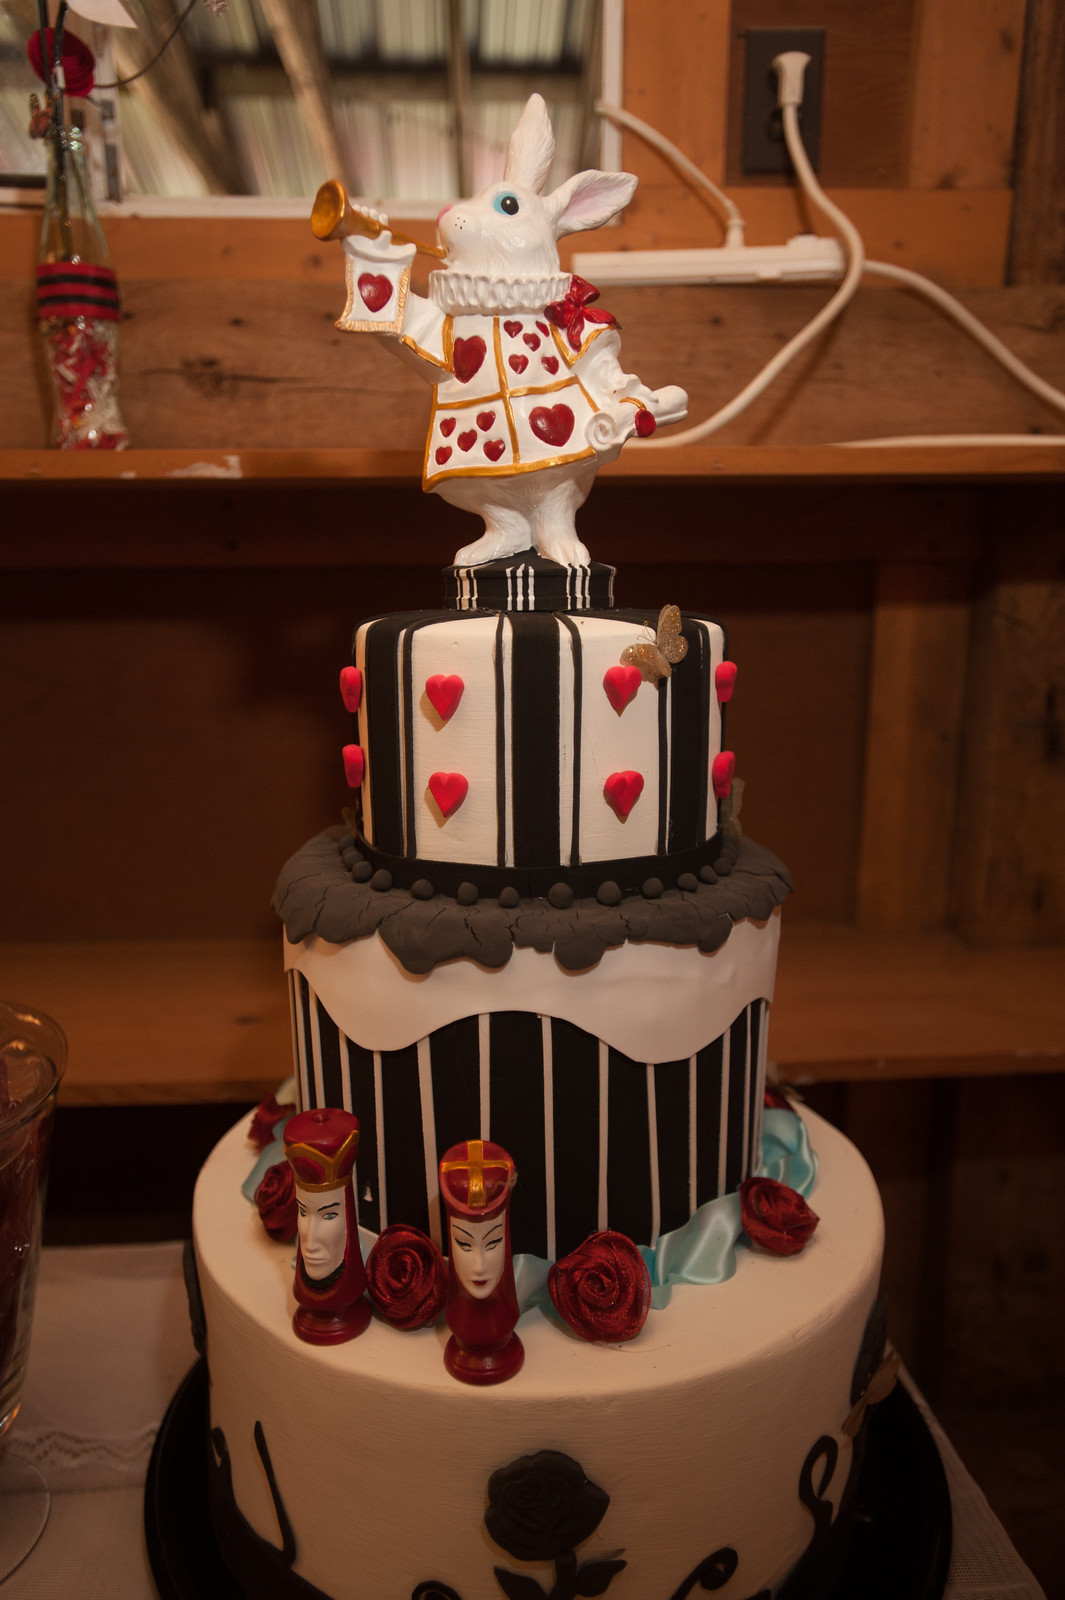 Offbeat Bride's most pinned wedding cakes